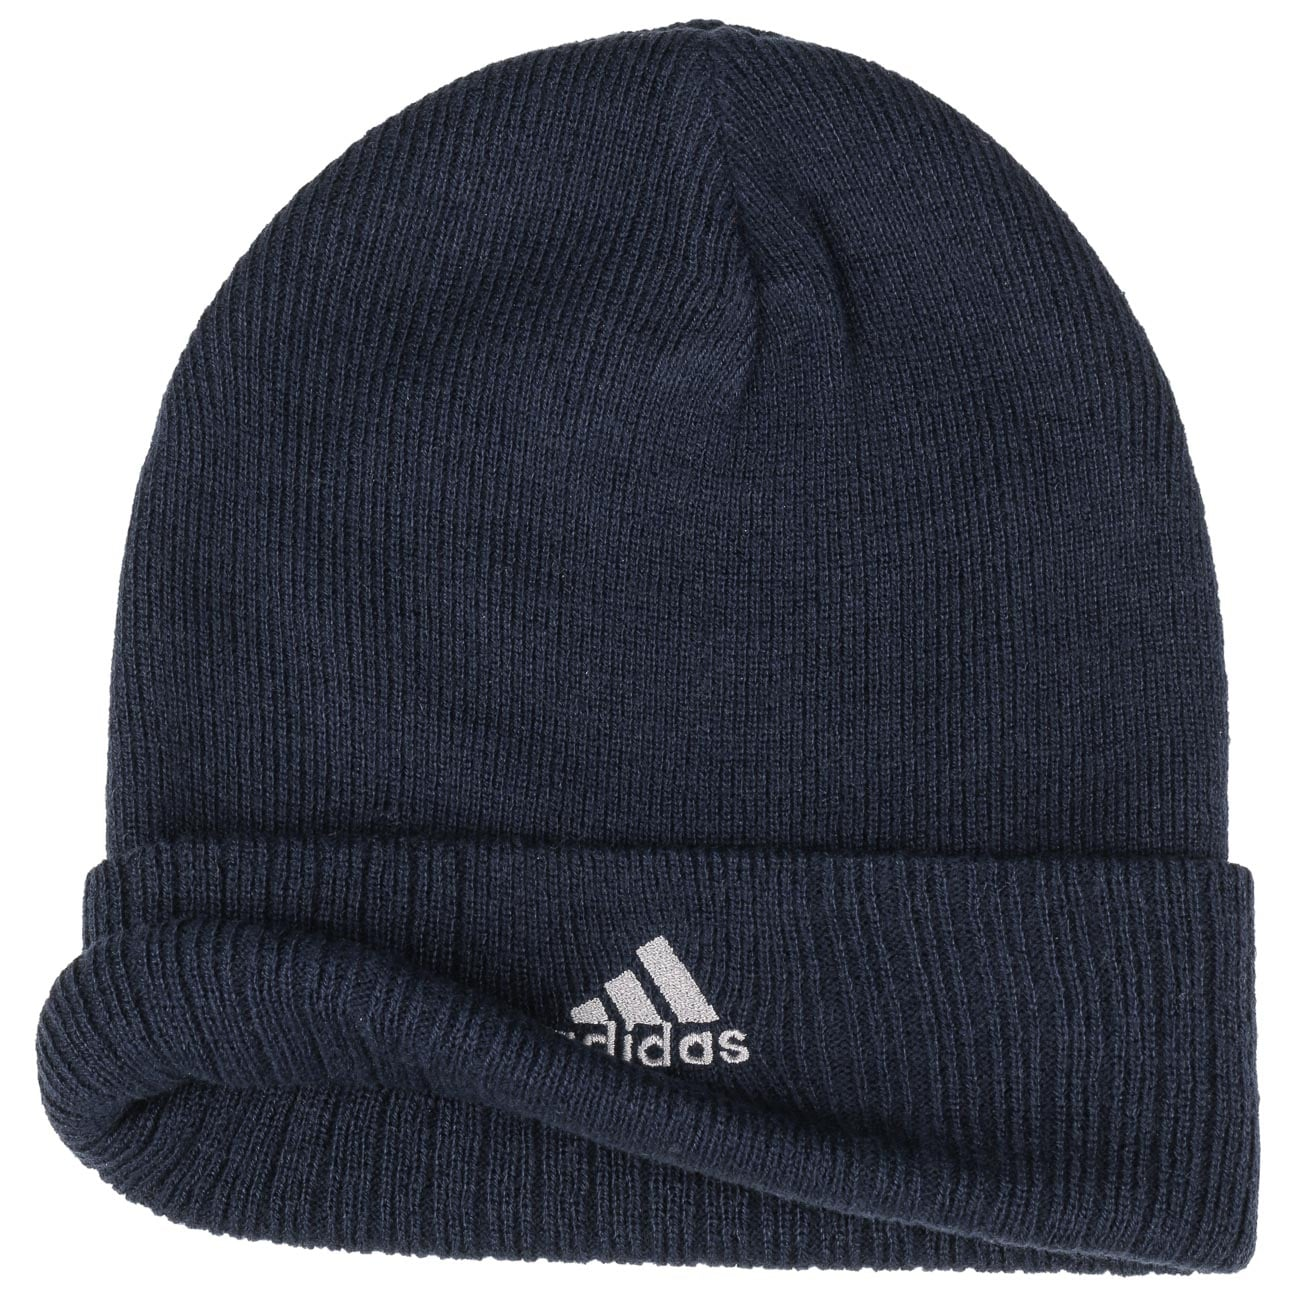 d3da308cc42 ... order corporate woolie hat with cuff by adidas 2 f1c41 67e31